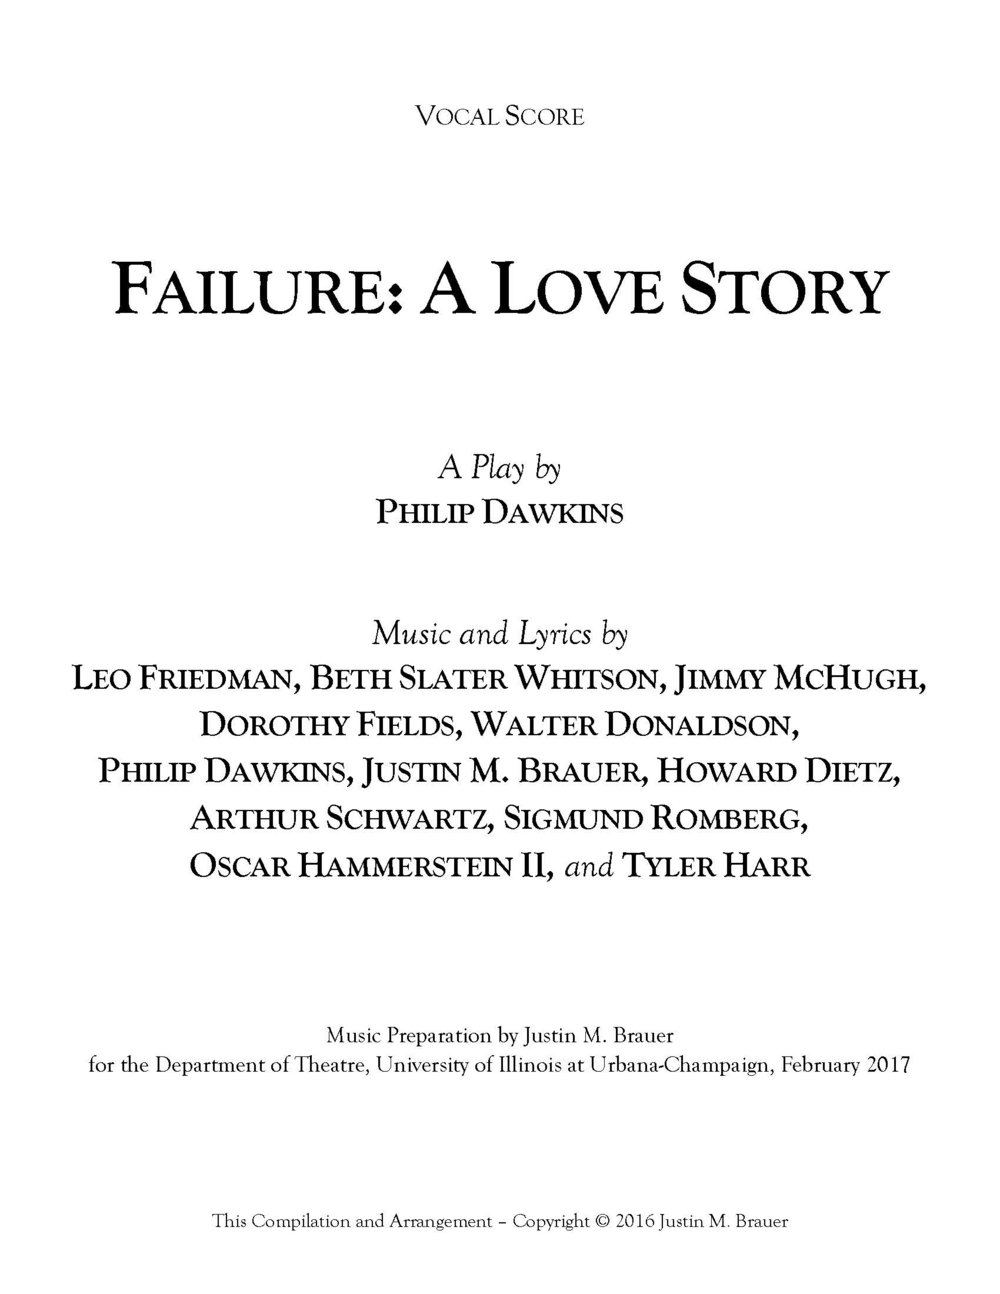 Failure A Love Story Vocal Score_Page_01.jpg